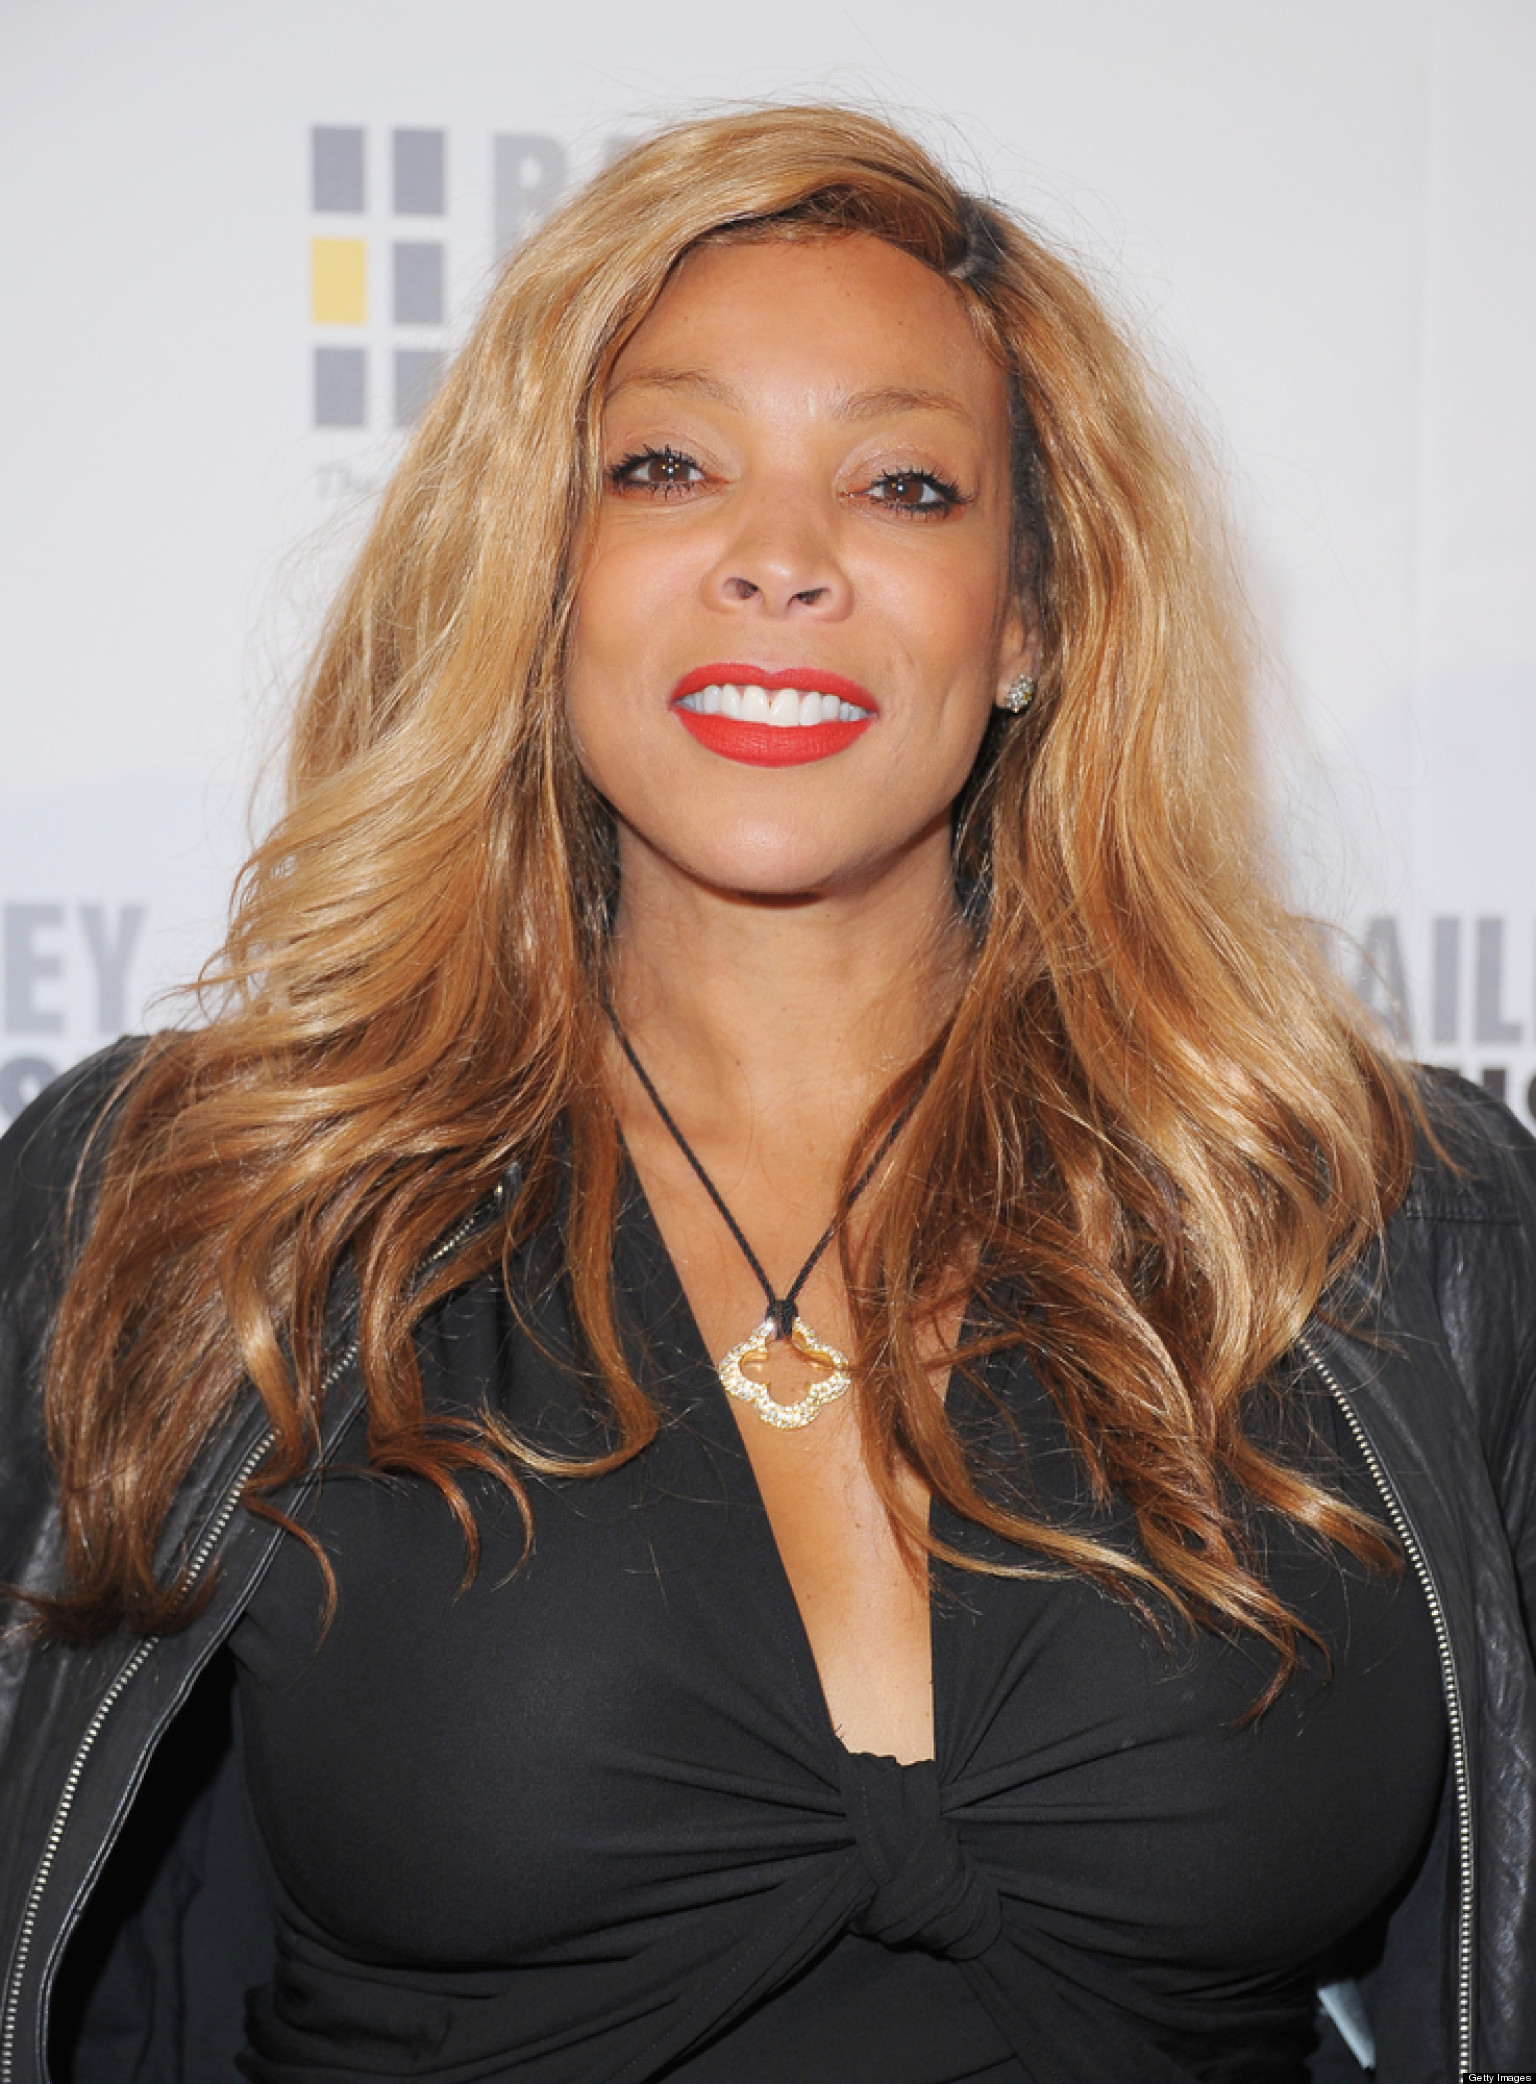 wendy williams on broadway debut in chicago huffpost